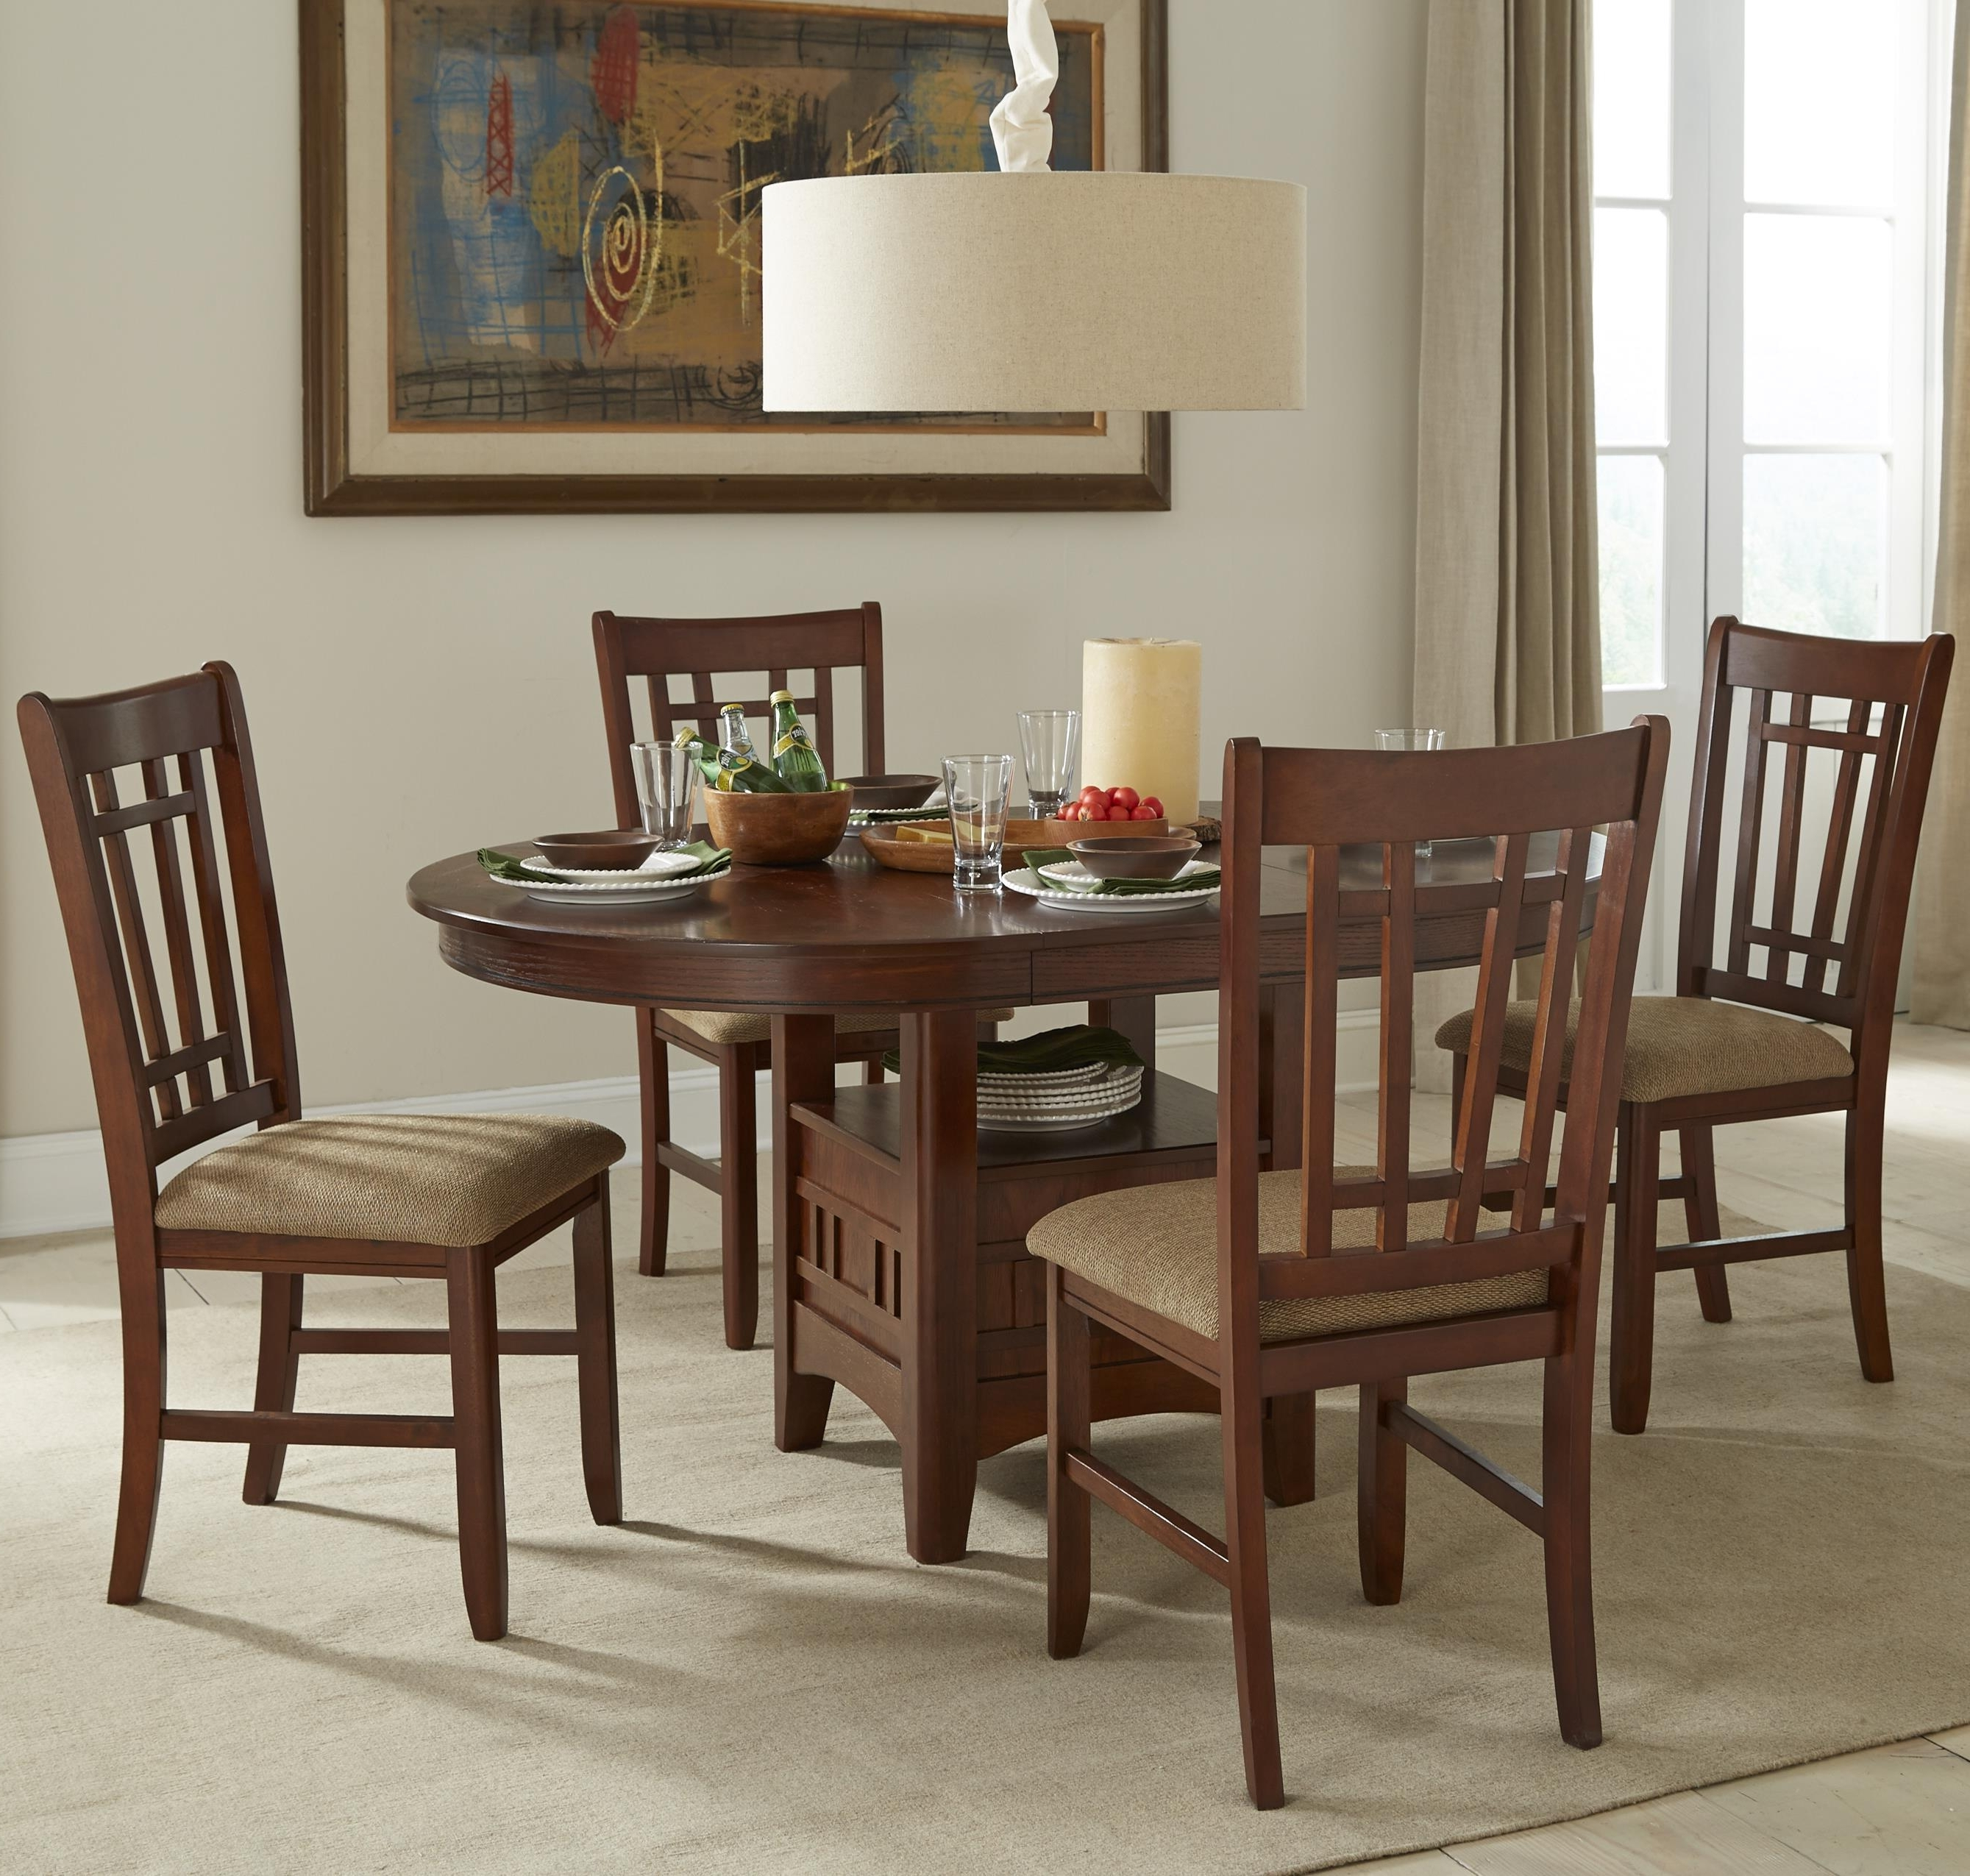 Best And Newest Dining Table Chair Sets Intended For Intercon Mission Casuals Oval Dining Table Set With Cushioned Side (Gallery 3 of 25)